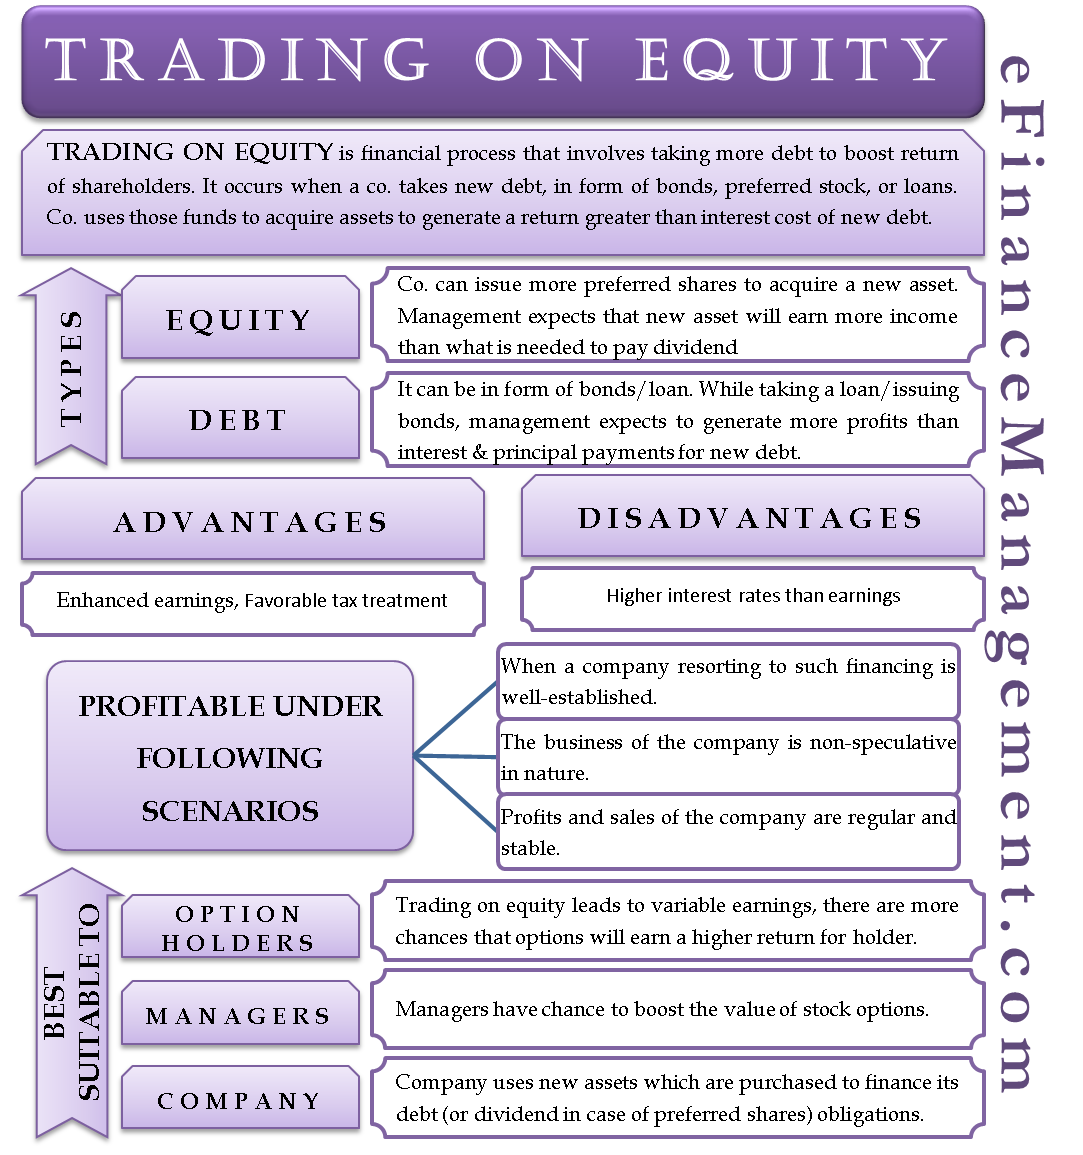 Trading on Equity